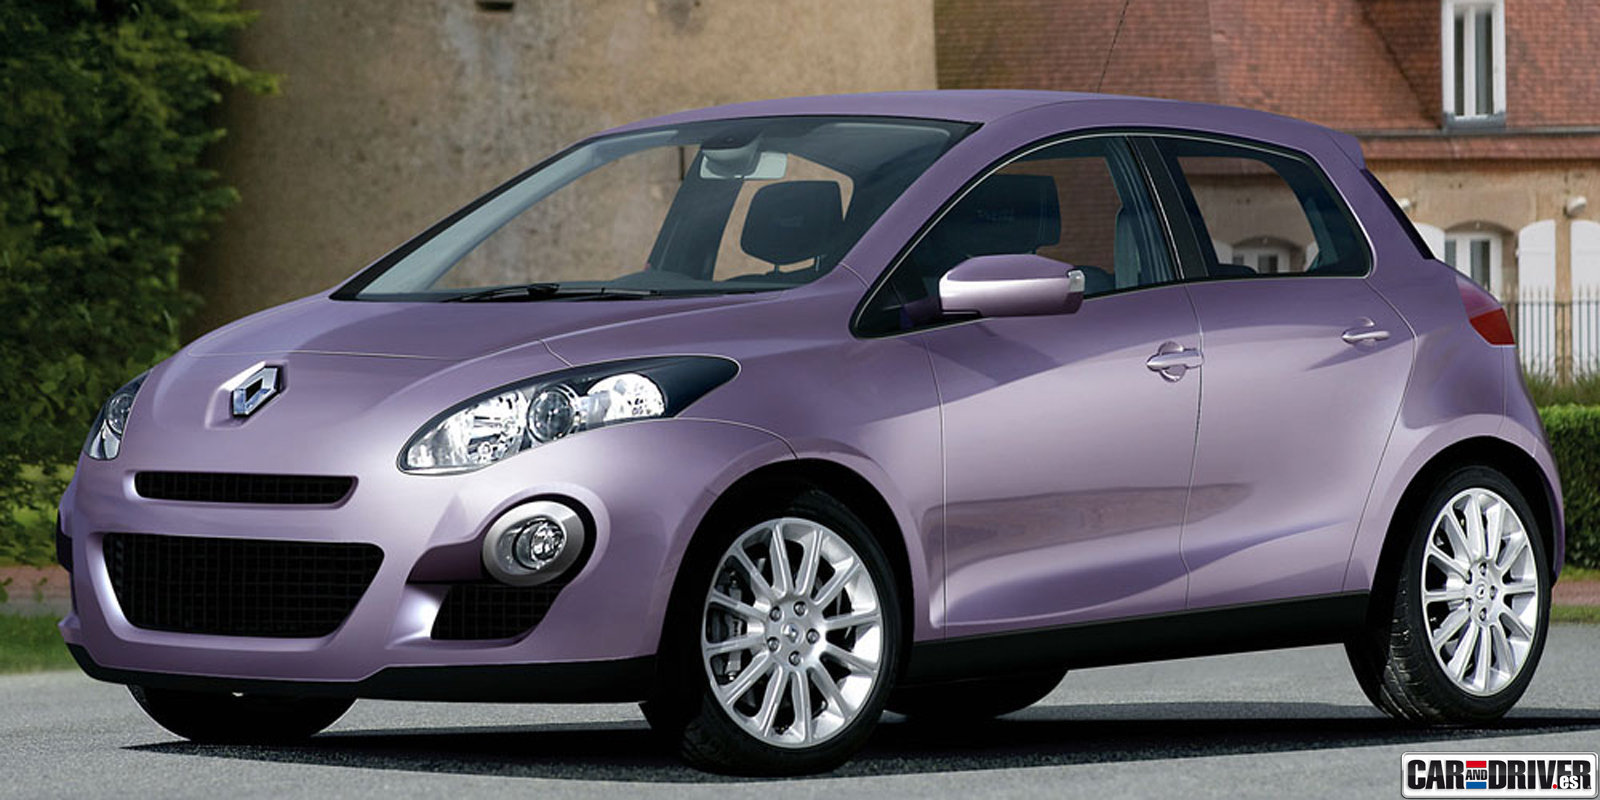 renault clio Free Download Image Of